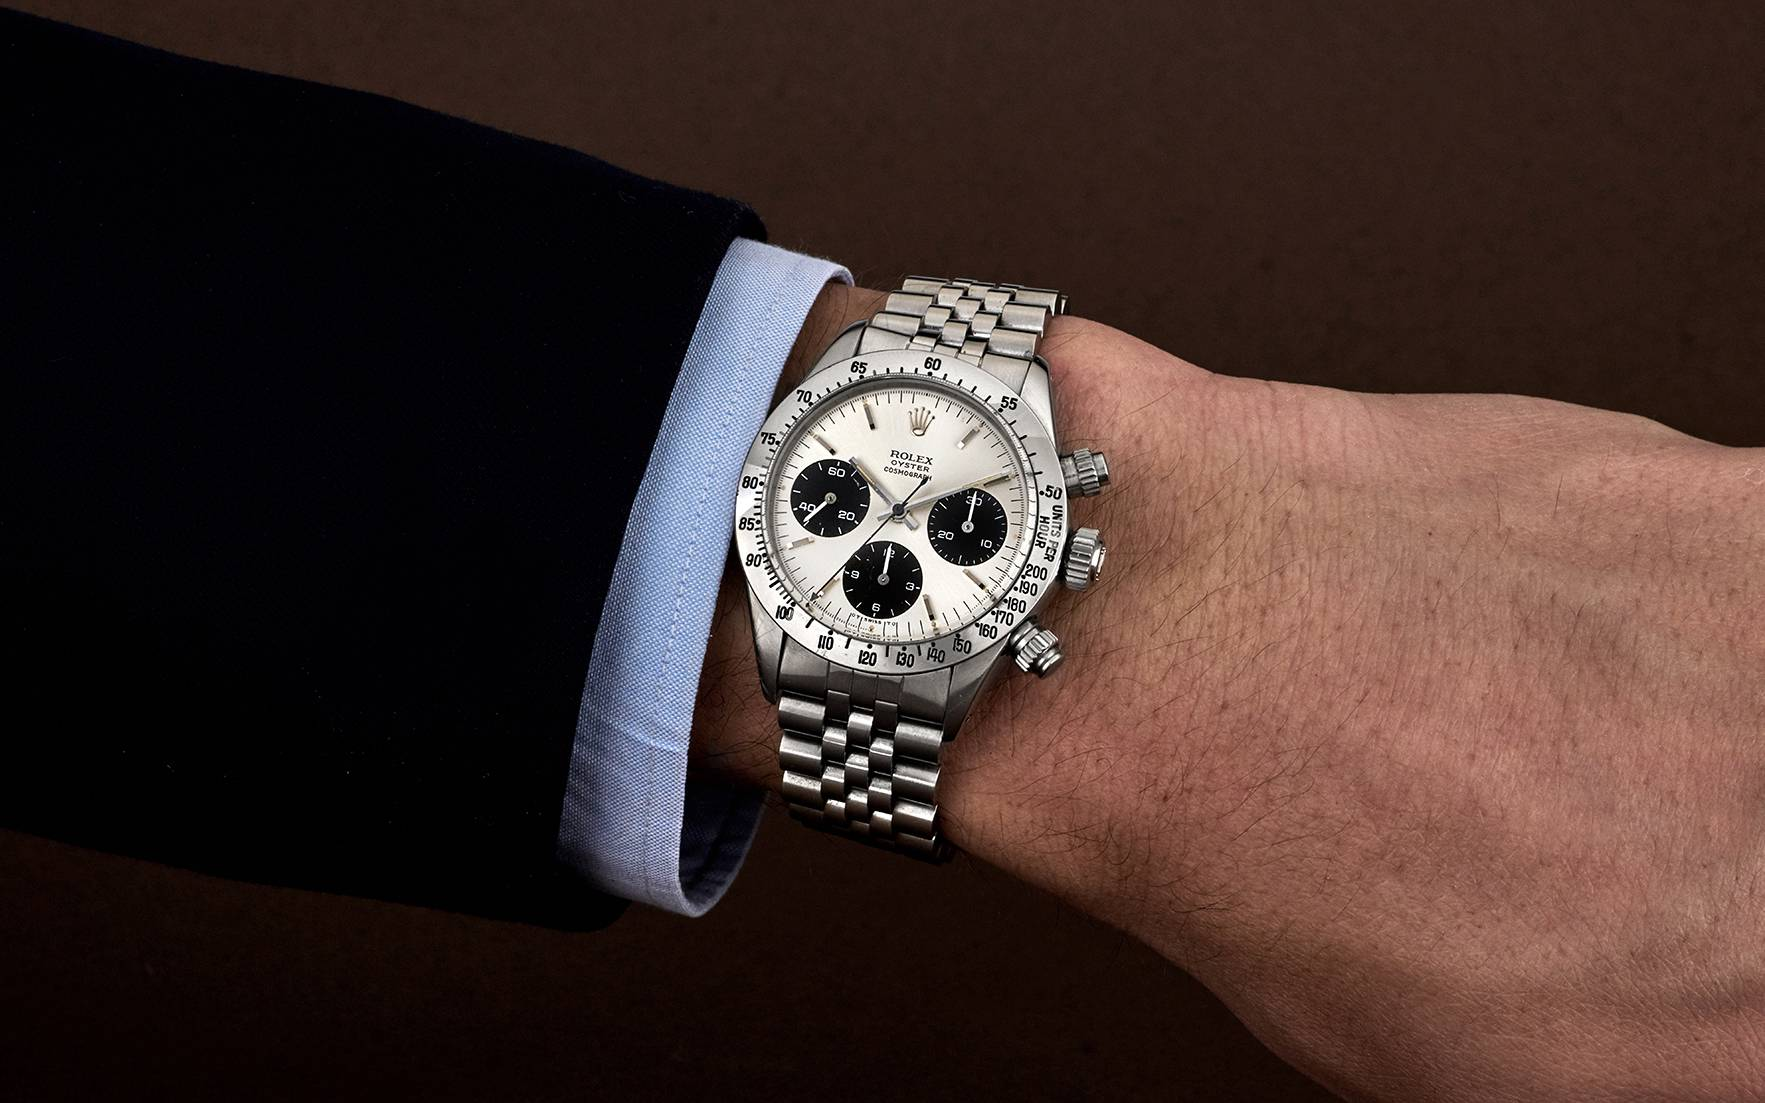 Deconstructed: The Rolex Dayto